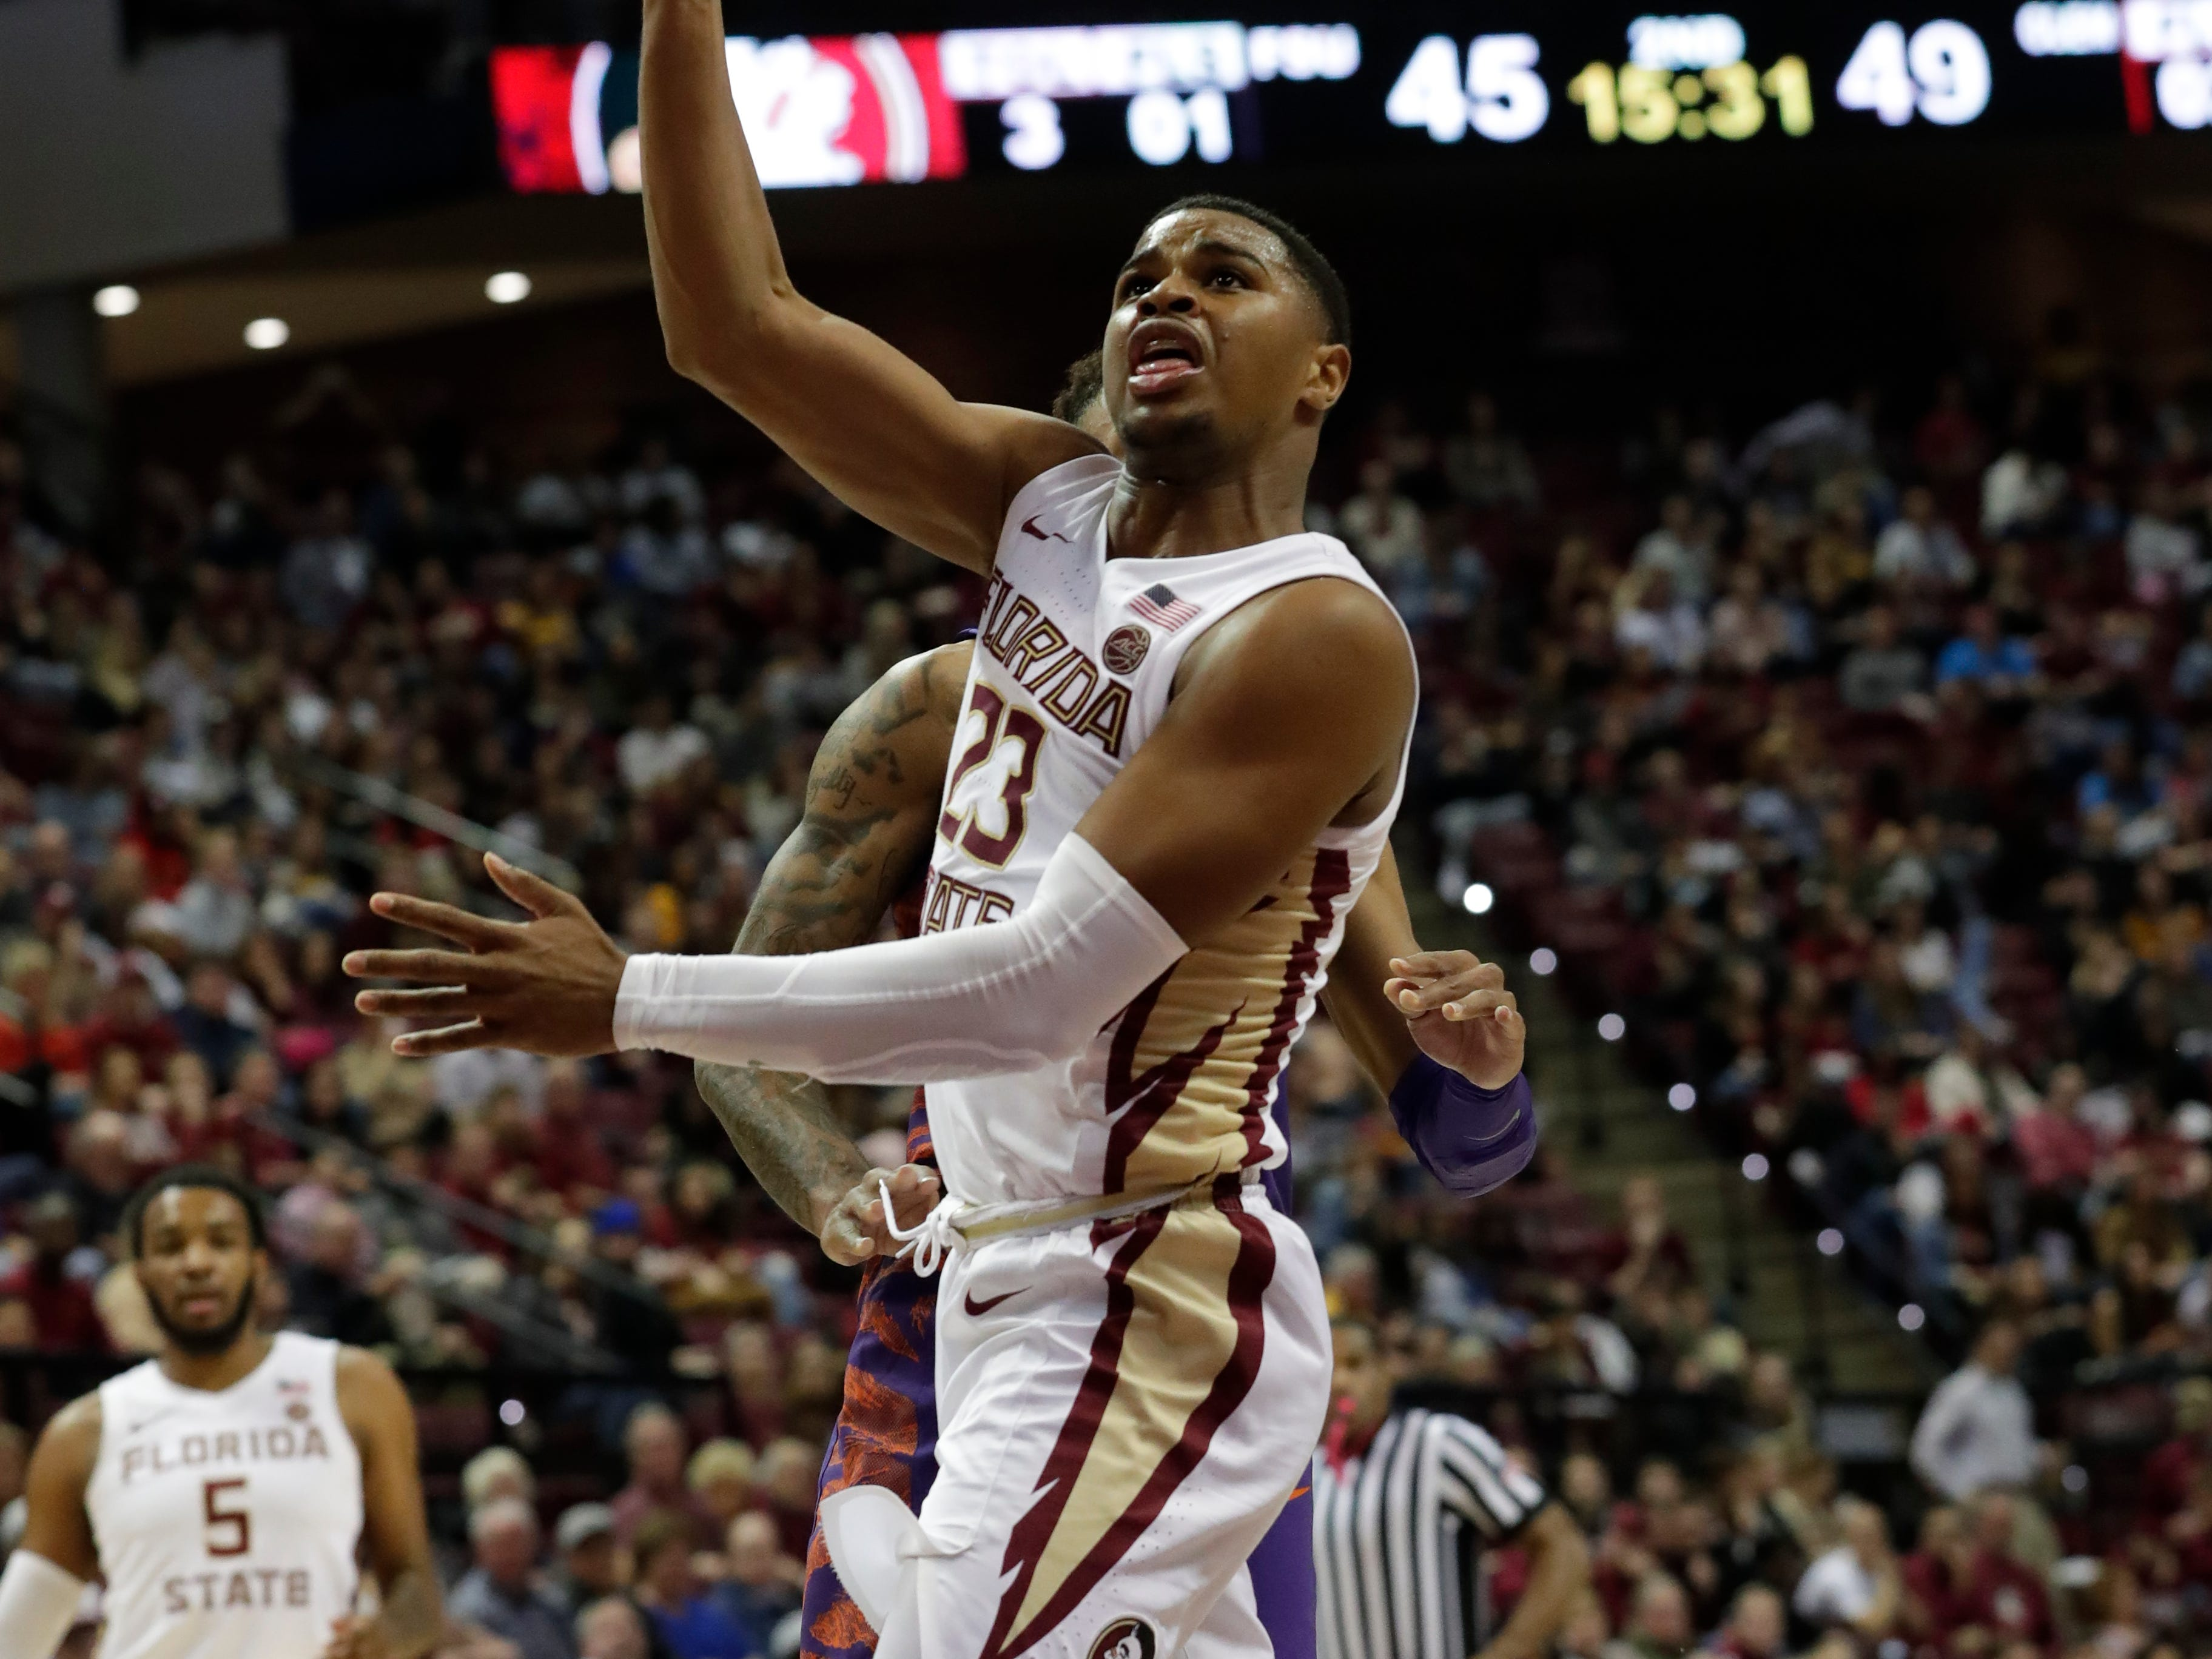 Florida State Seminoles guard M.J. Walker (23) shoots for two. The Florida State Seminoles face off against the Clemson Tigers at the Tucker Civic Center, Tuesday, Jan. 22, 2019.